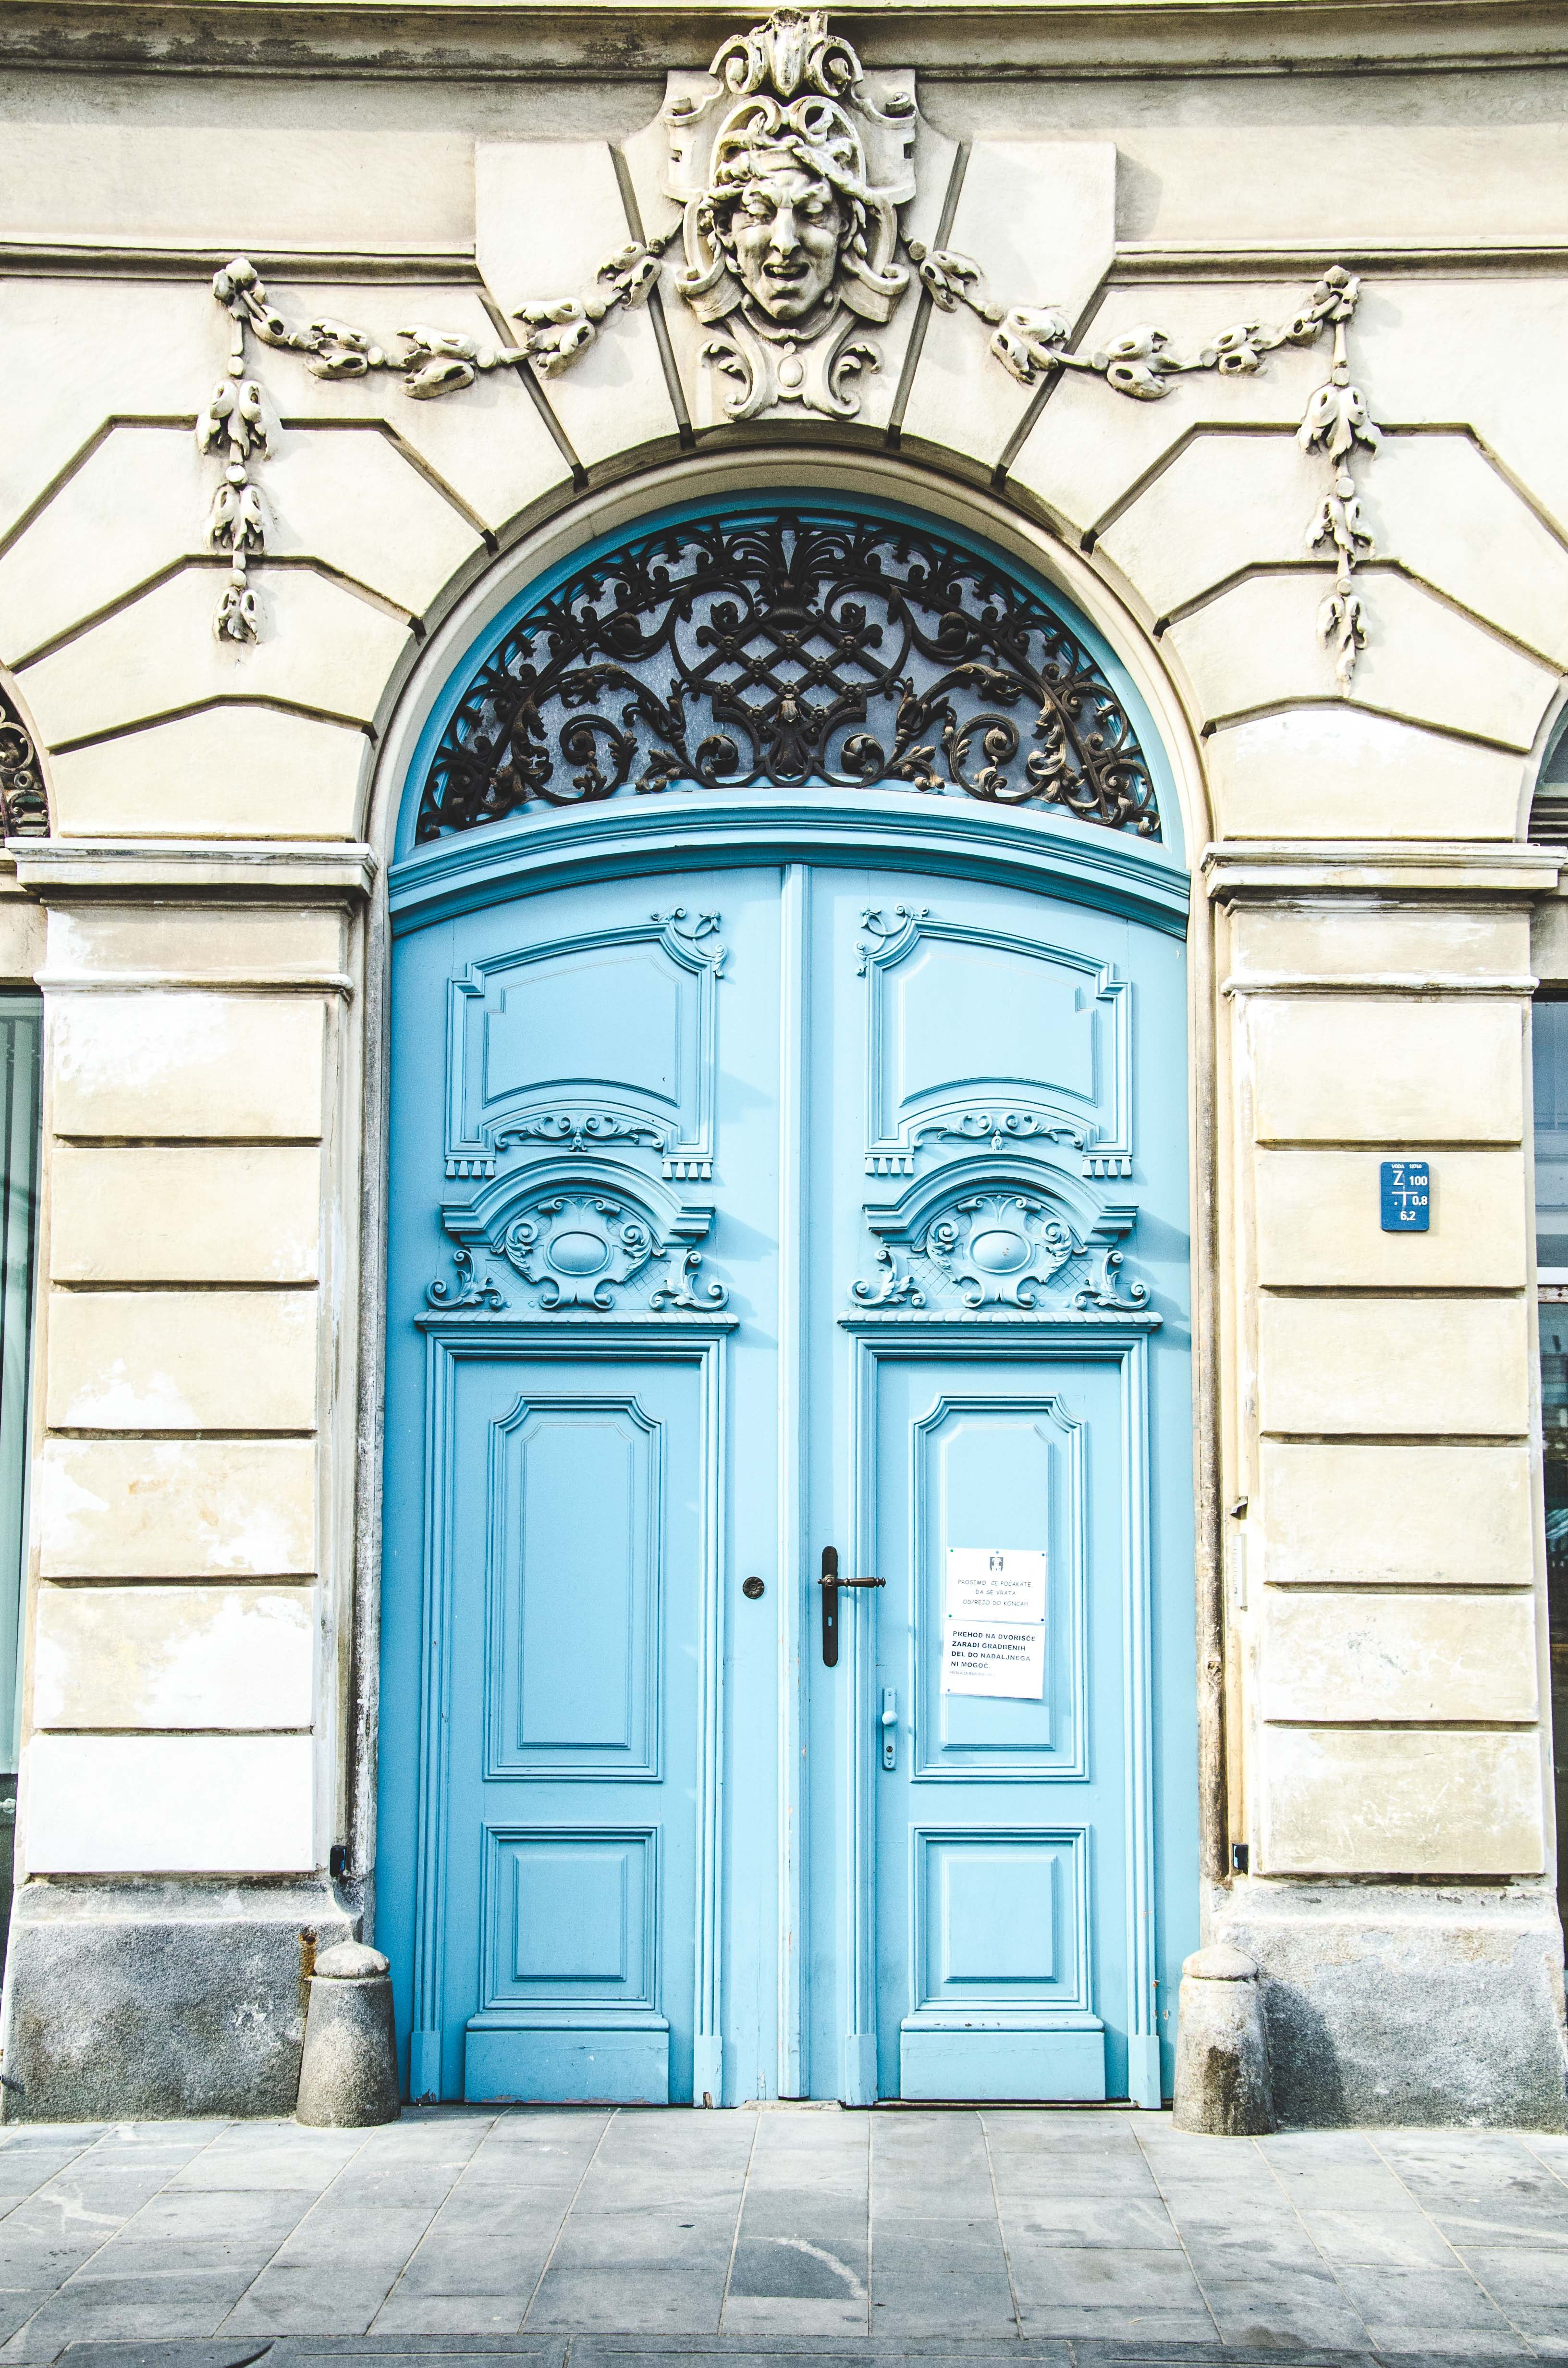 white building with blue wooden doors